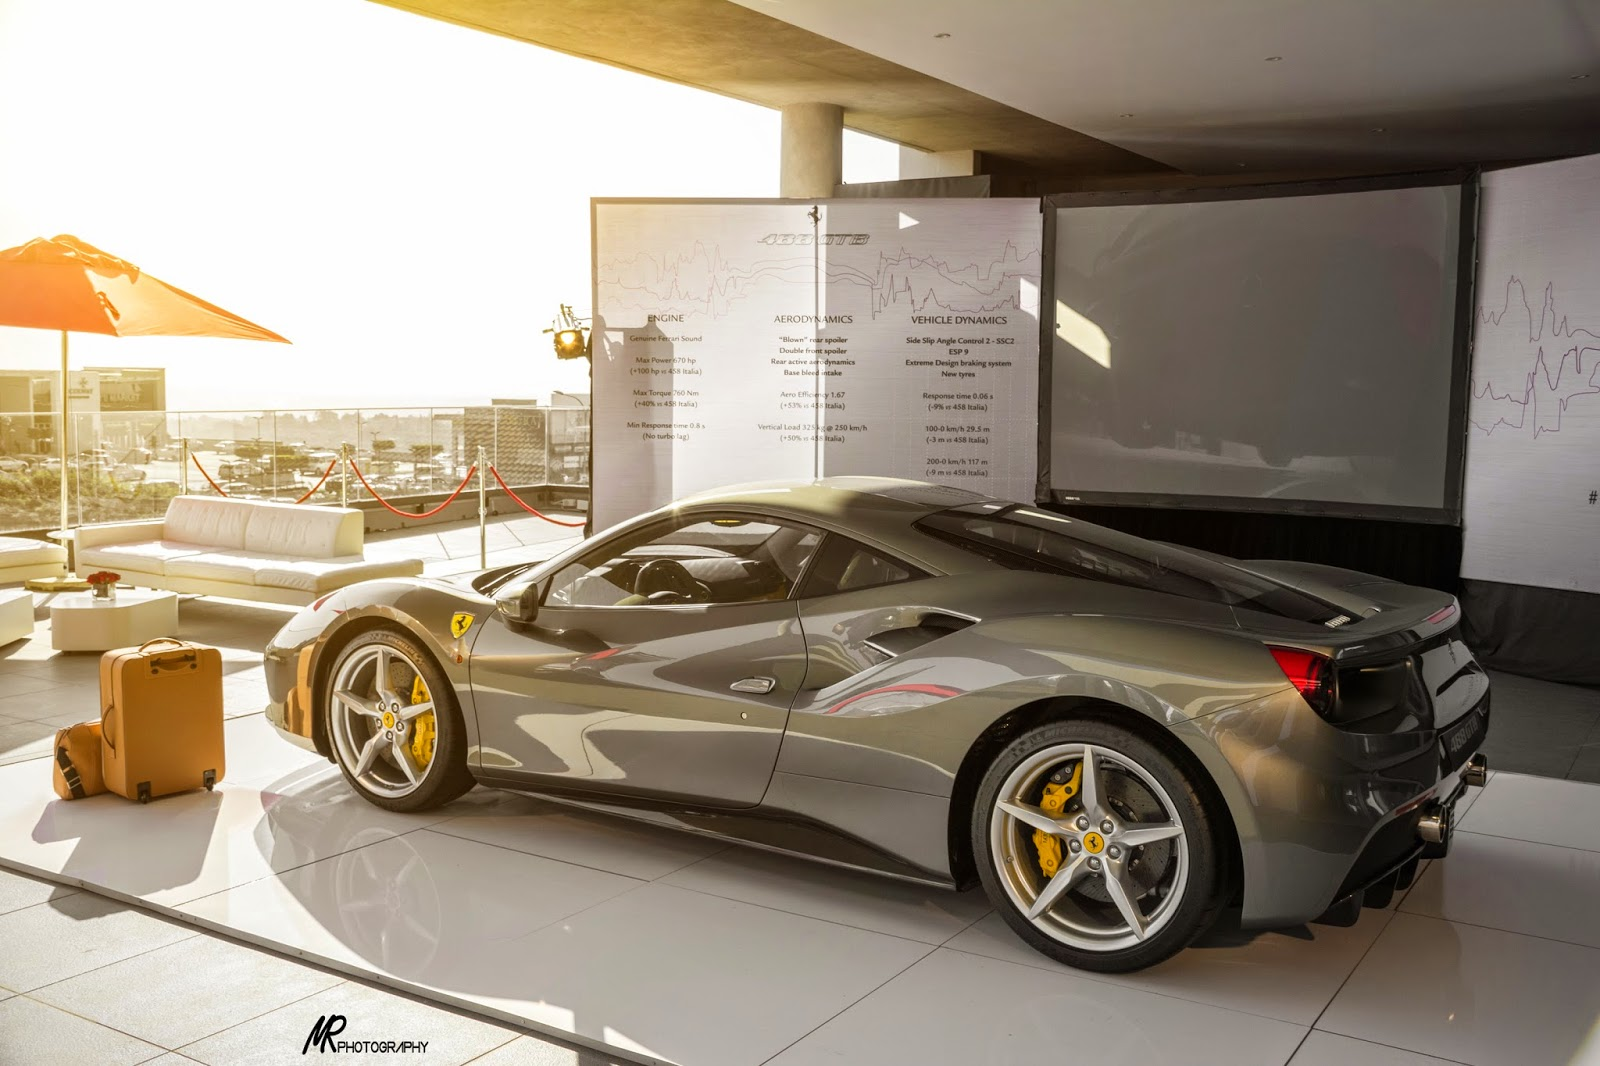 new car launches south africaThe New Ferrari 488 GTB Unveiled In Johannesburg South Africa